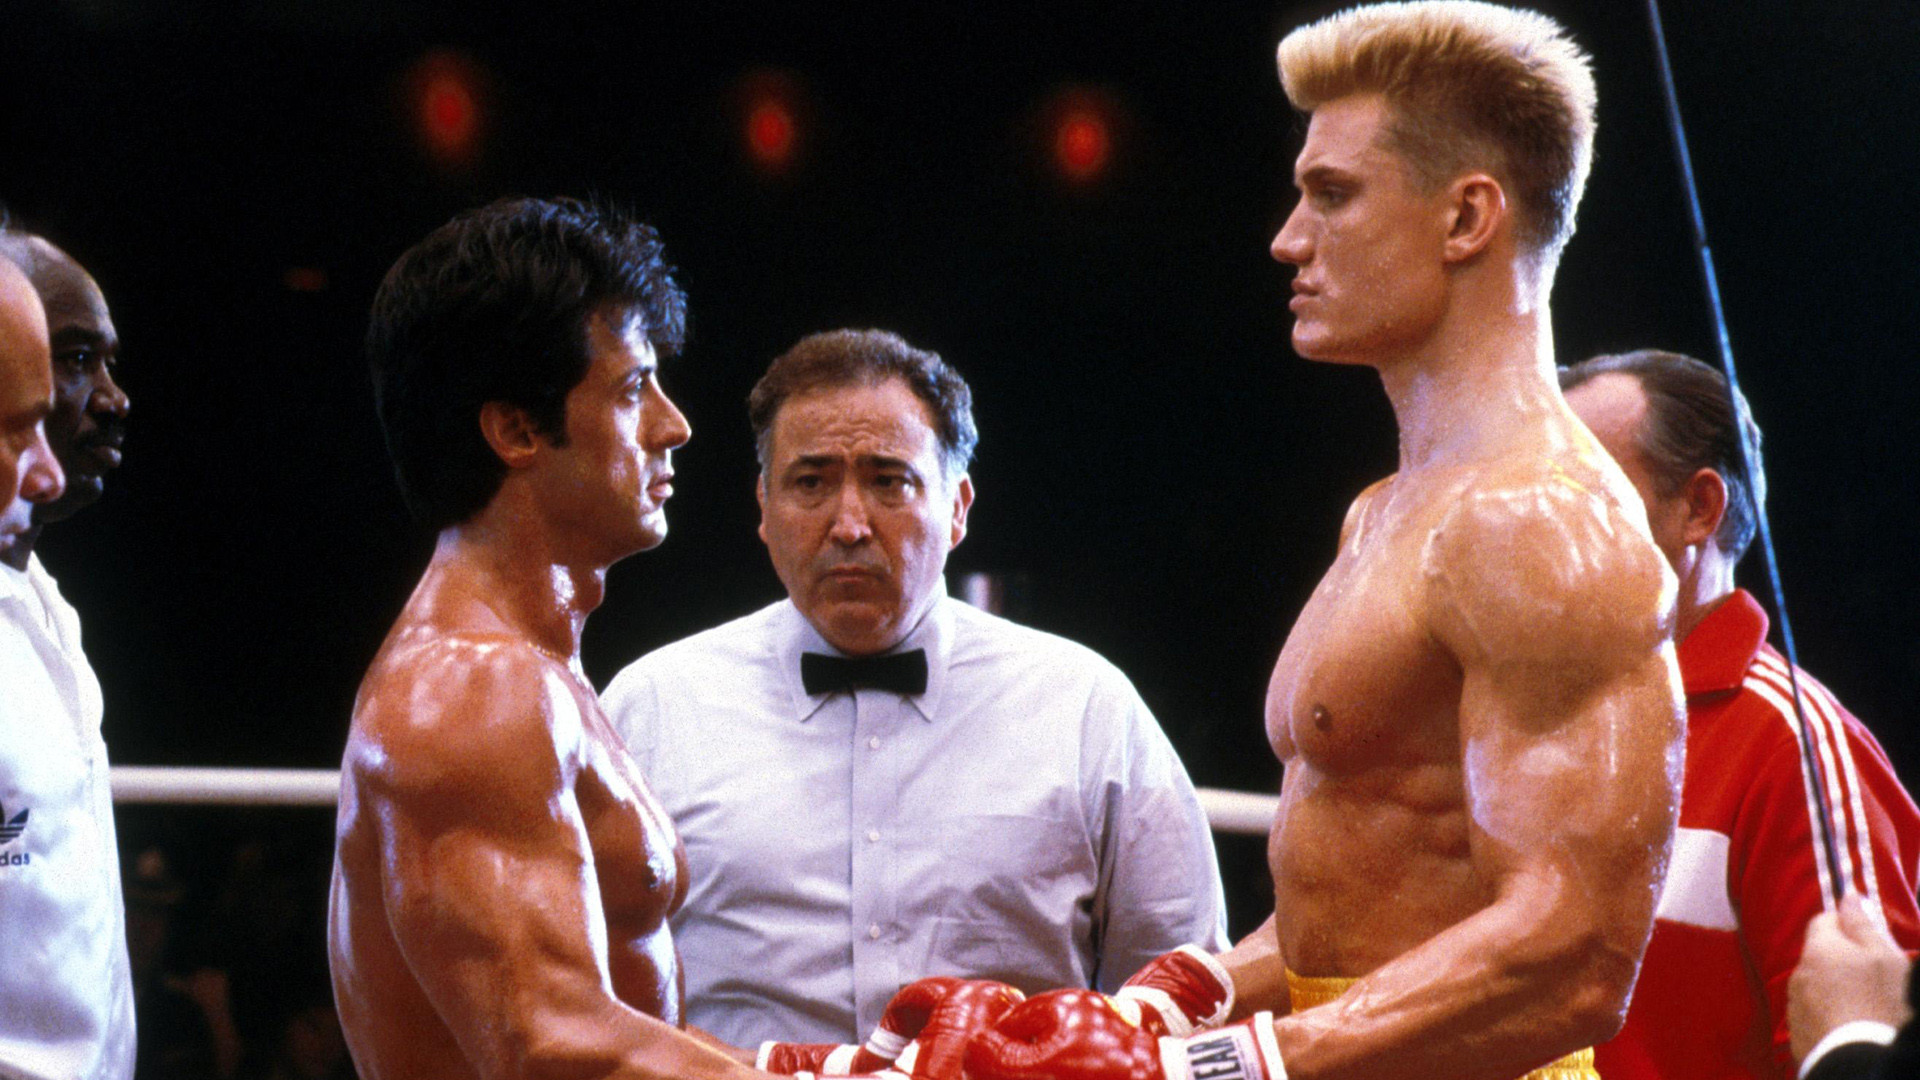 1920x1080 Images of Rocky IV |